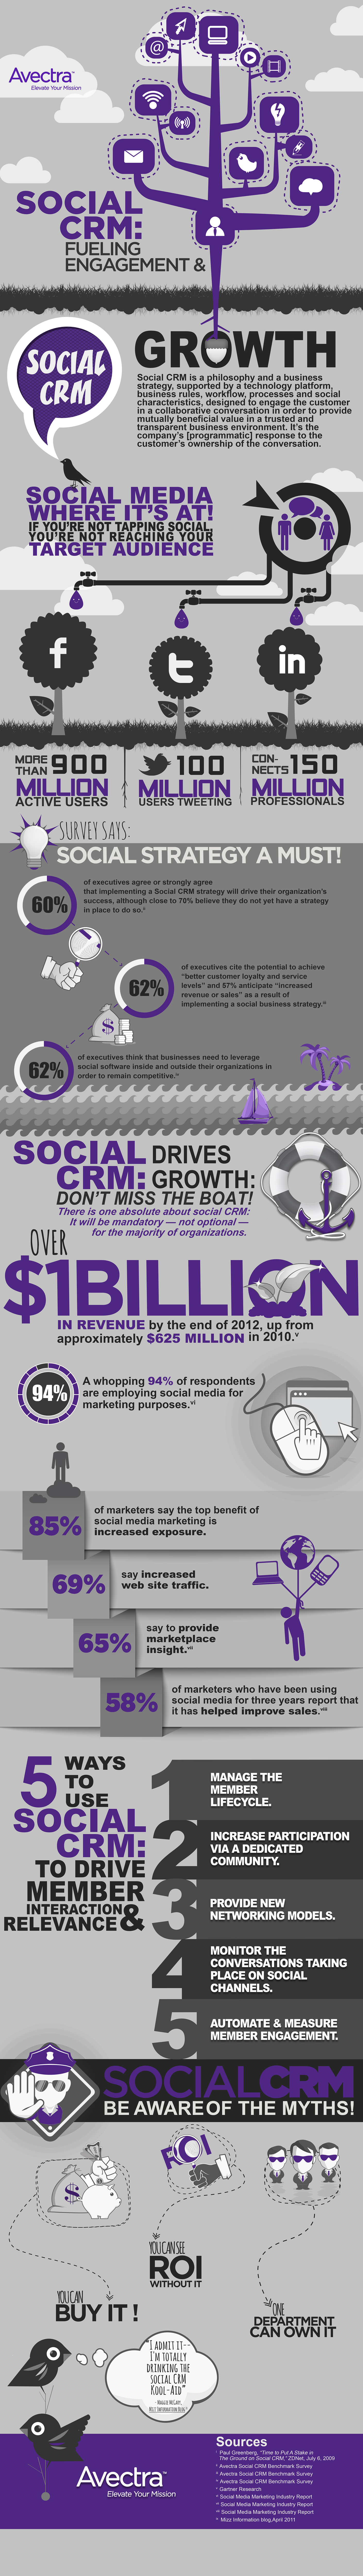 Social CRM Fueling Engagement